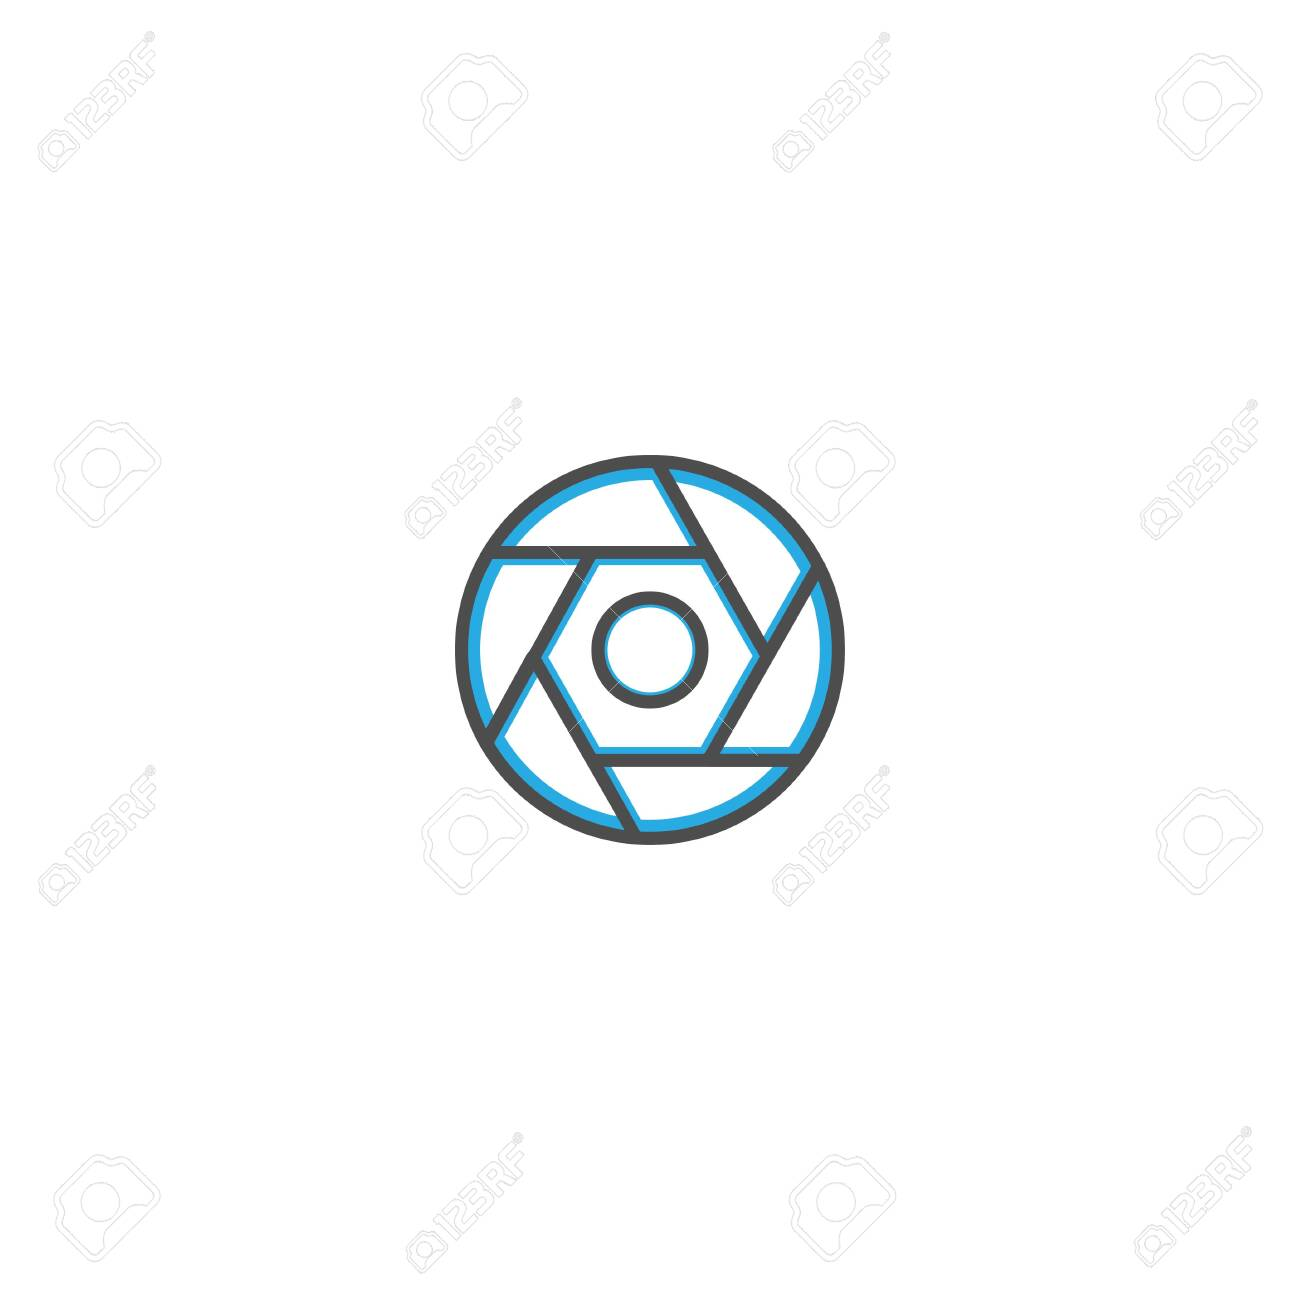 Shutter Icon Design Photography And Video Icon Line Vector Illustration